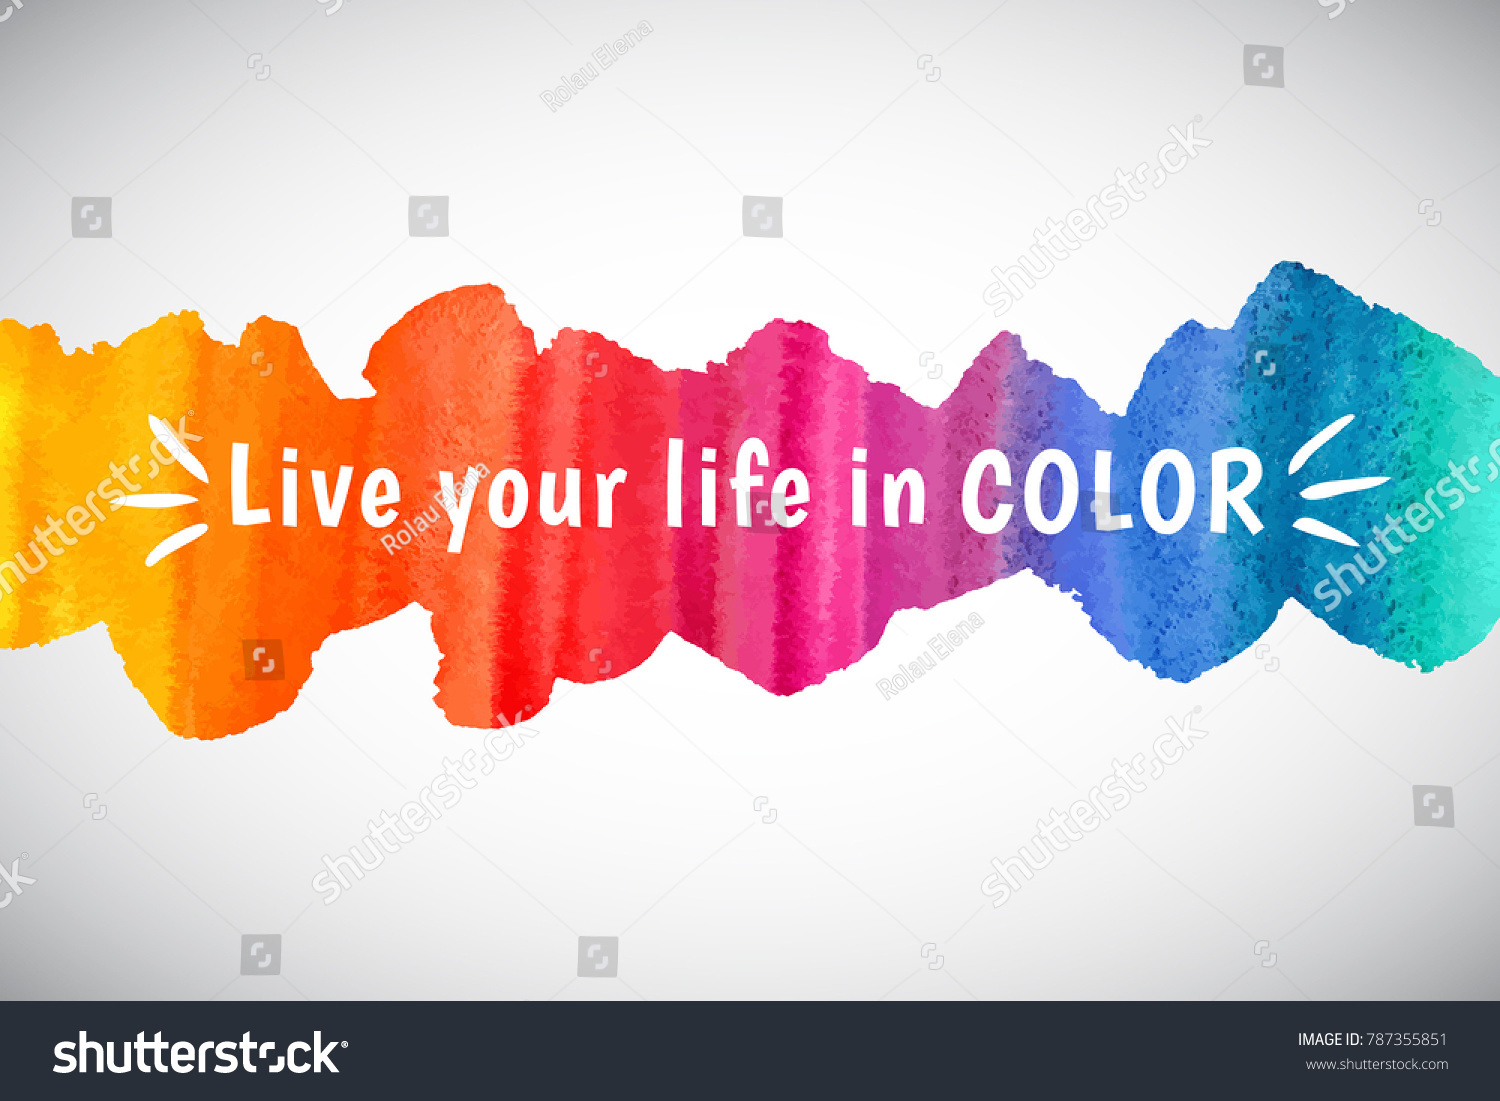 Color Your Life Quotes Watercolor Vector Rainbow Border Frame Inspiration Stock Vector